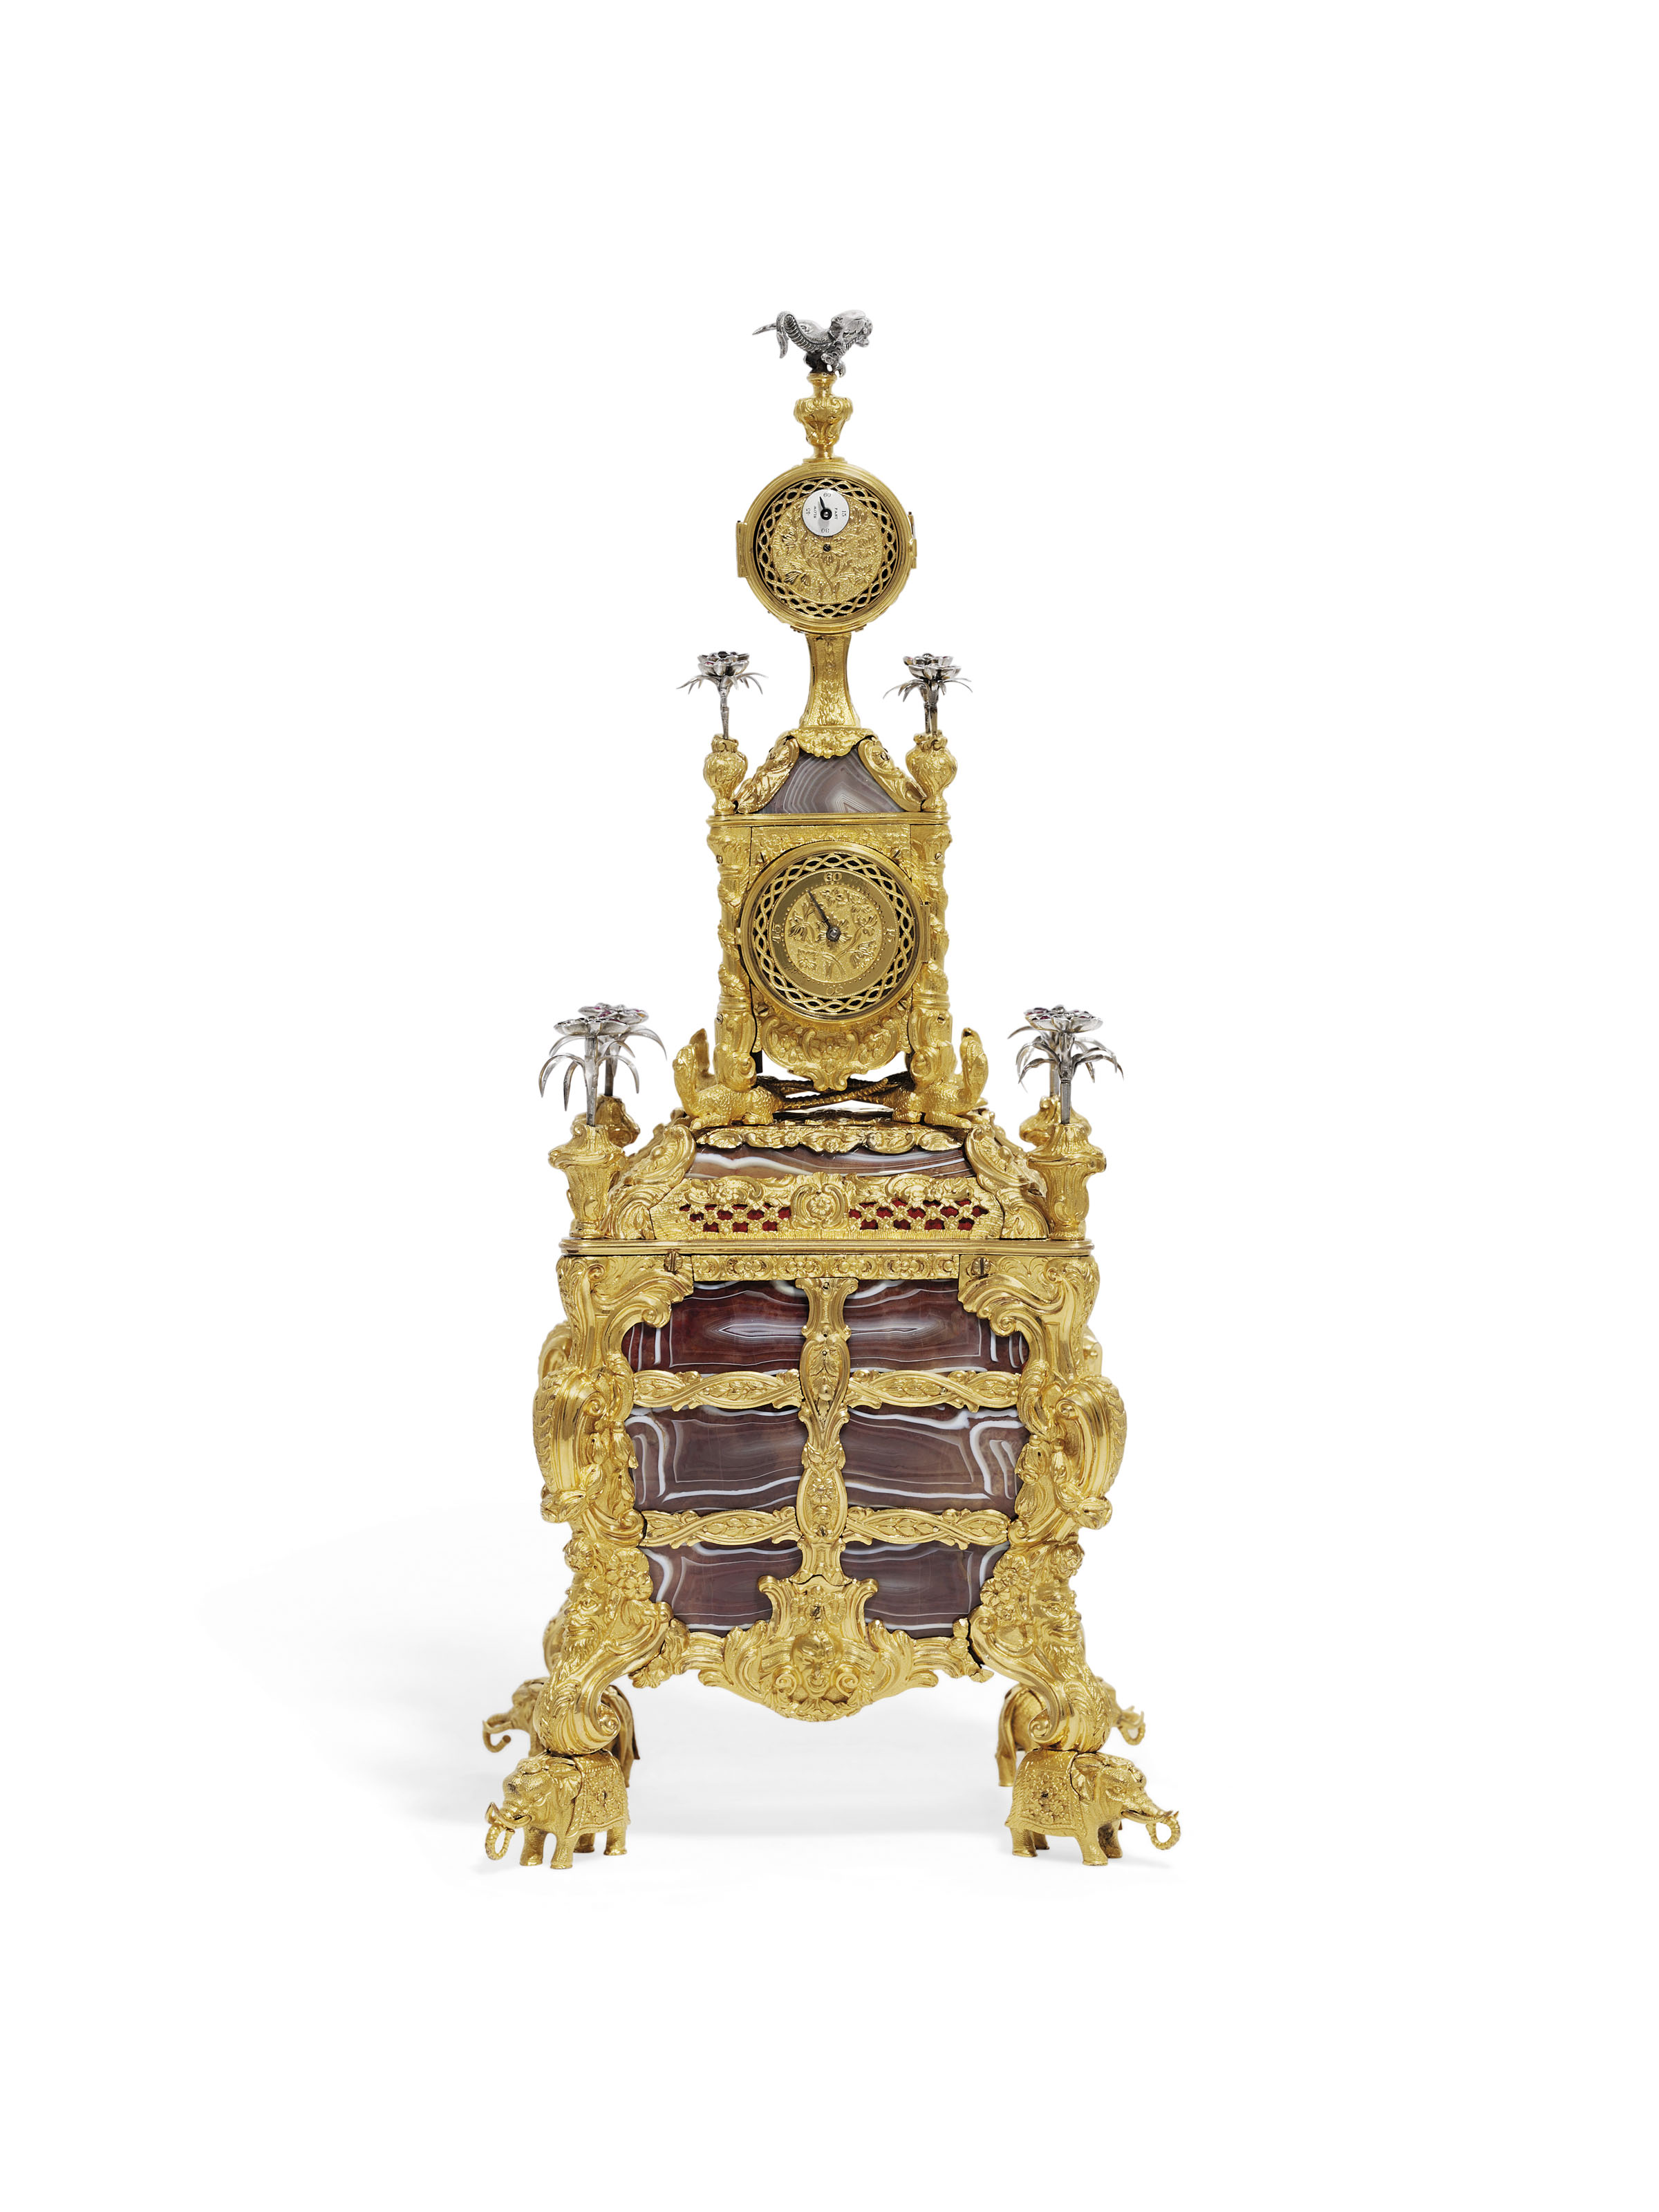 A GEORGE III ORMOLU, SILVER AND AGATE MUSICAL TIMEPIECE TABLE CLOCK